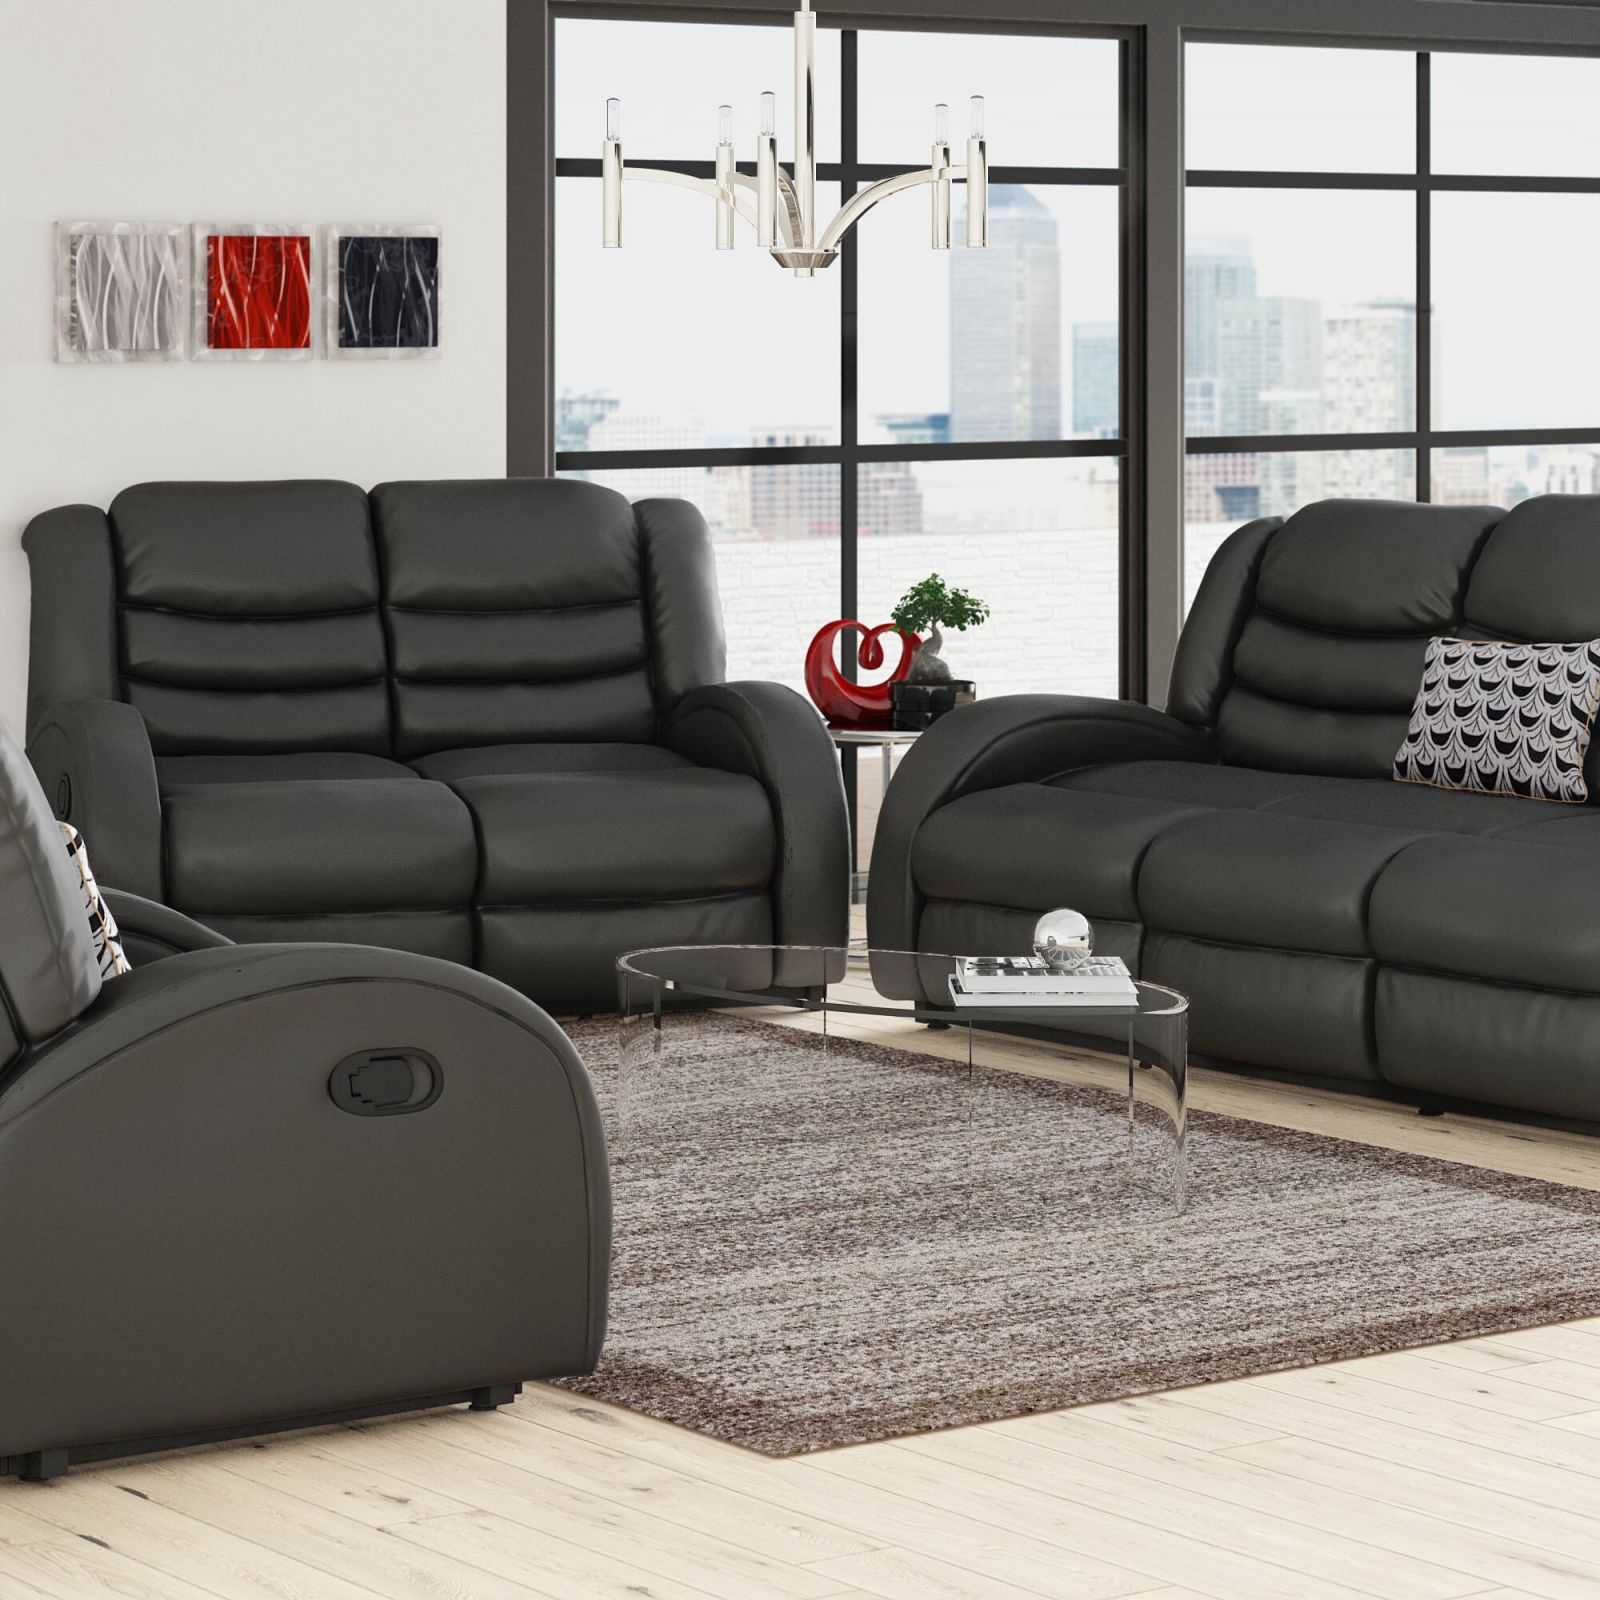 Mcpeak 3 Piece Living Room Set intended for Unique Living Room Sets